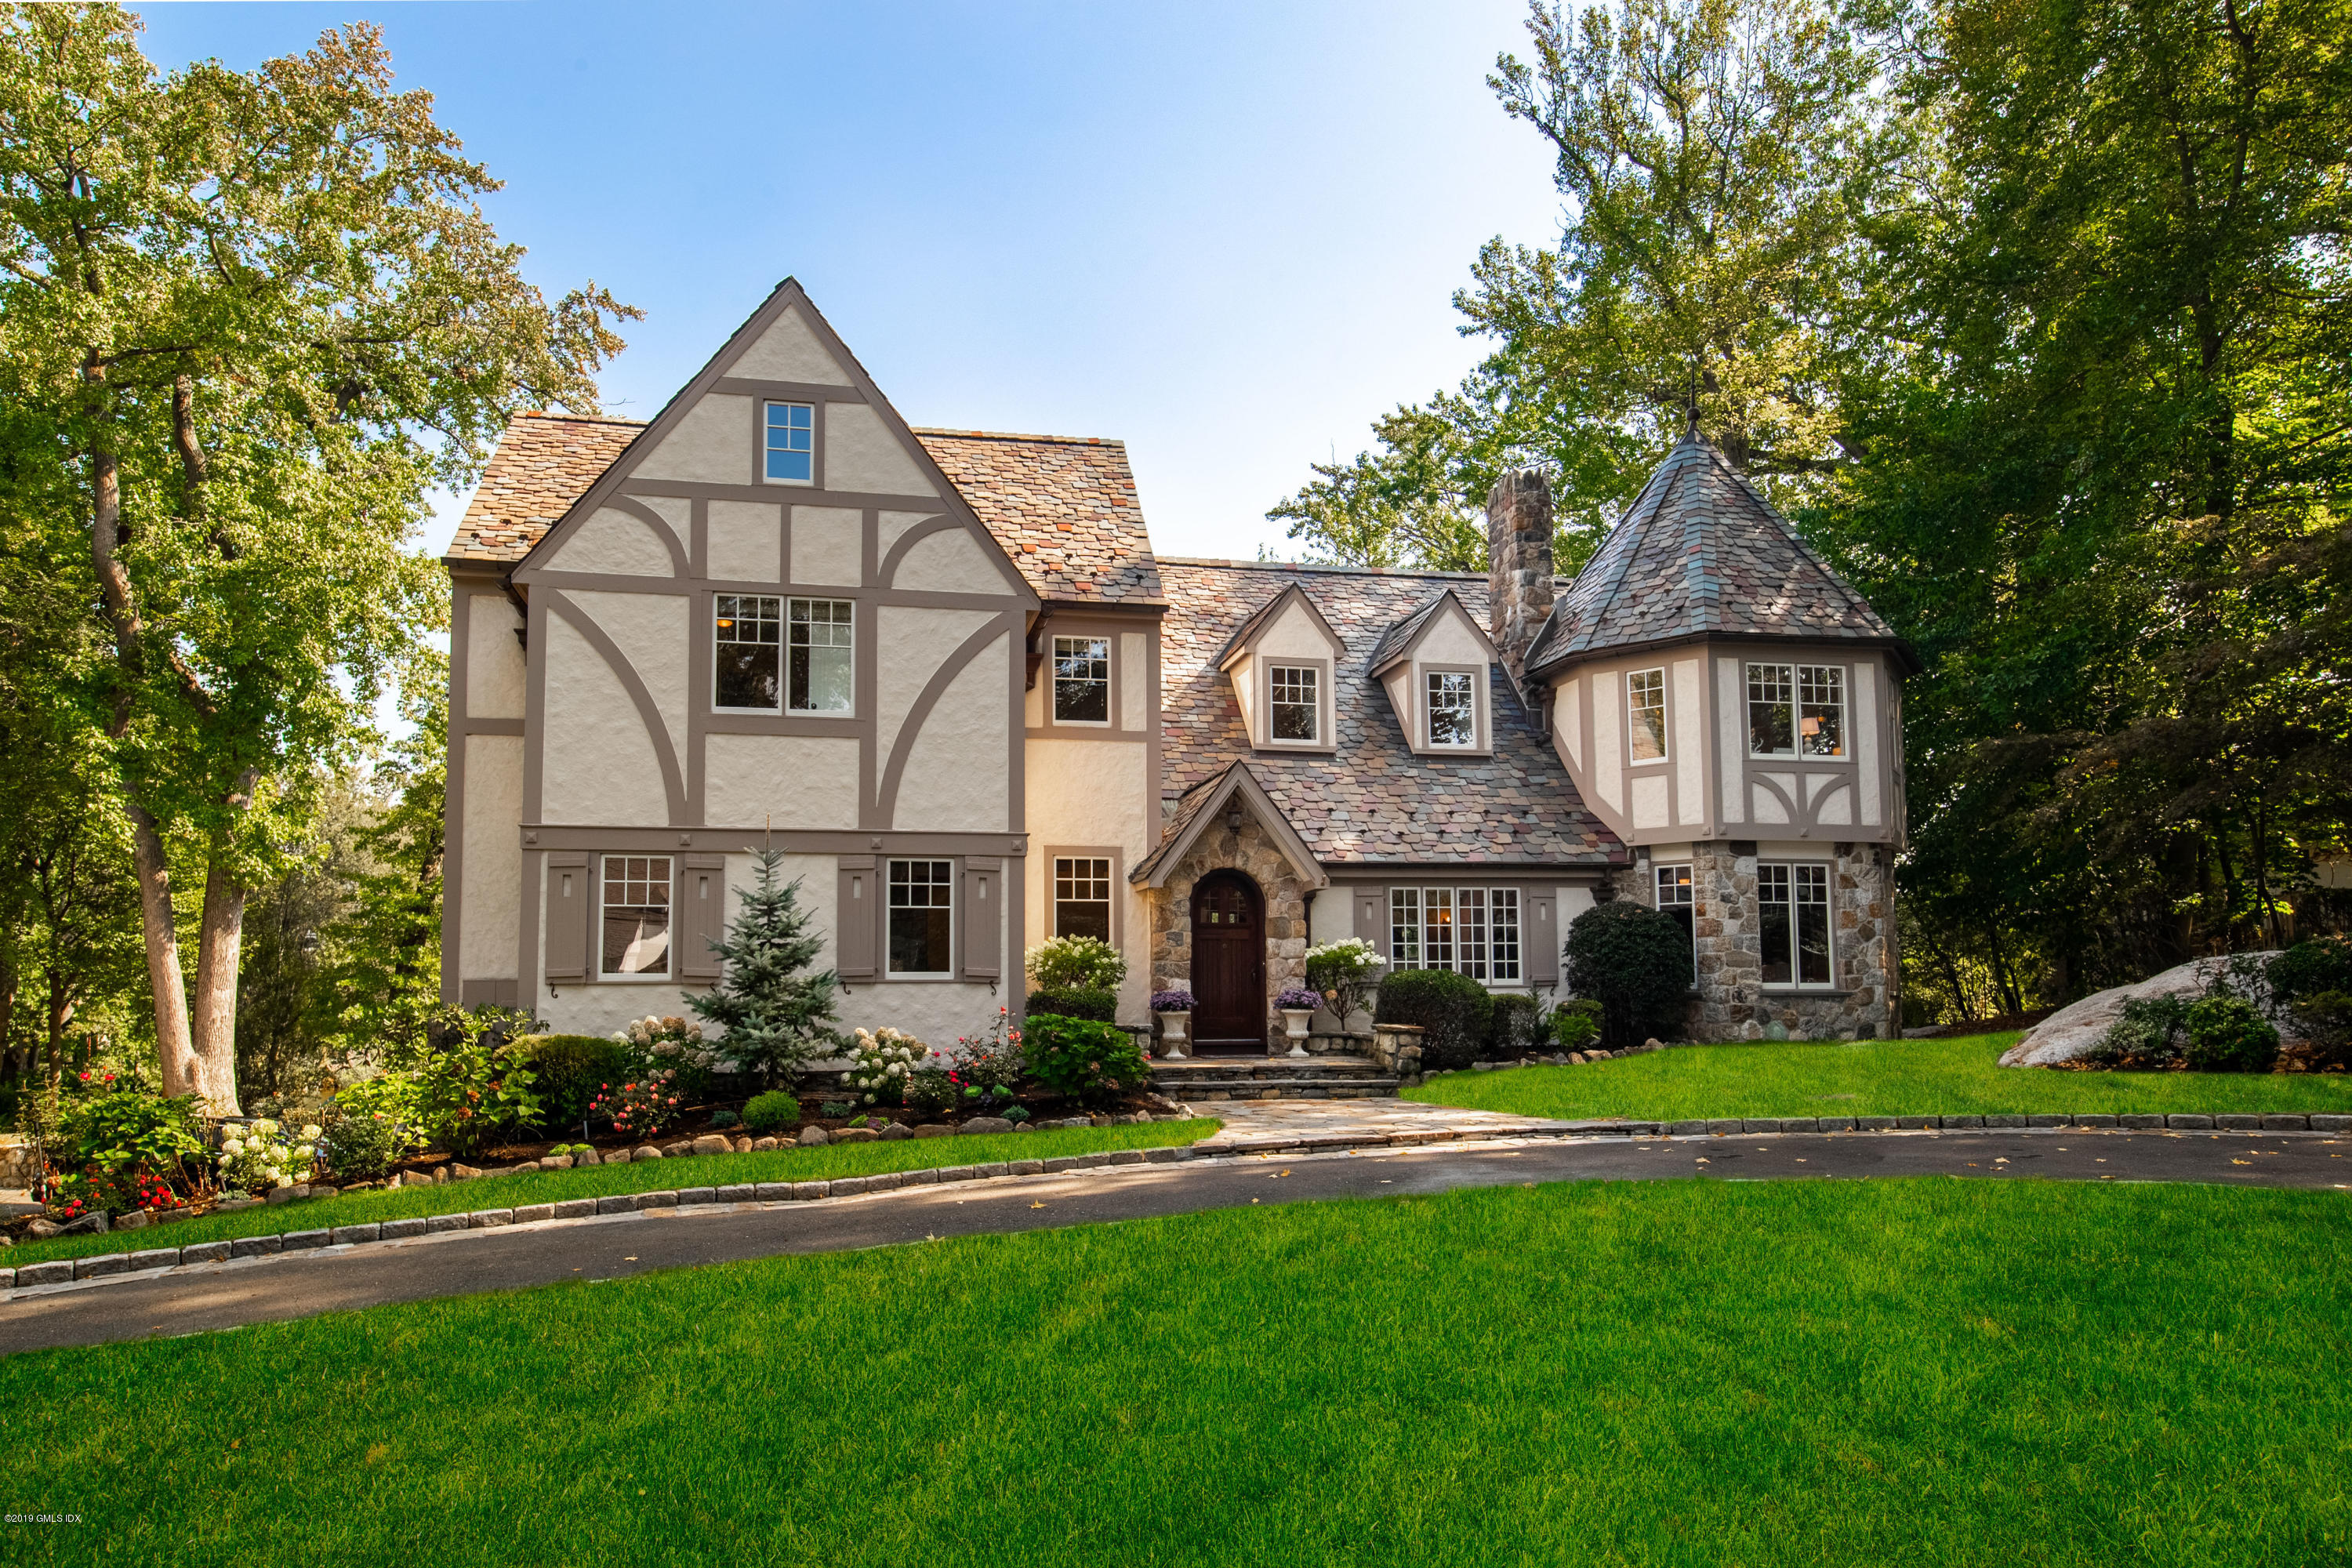 55 Orchard Drive,Greenwich,Connecticut 06830,6 Bedrooms Bedrooms,5 BathroomsBathrooms,Single family,Orchard,108050